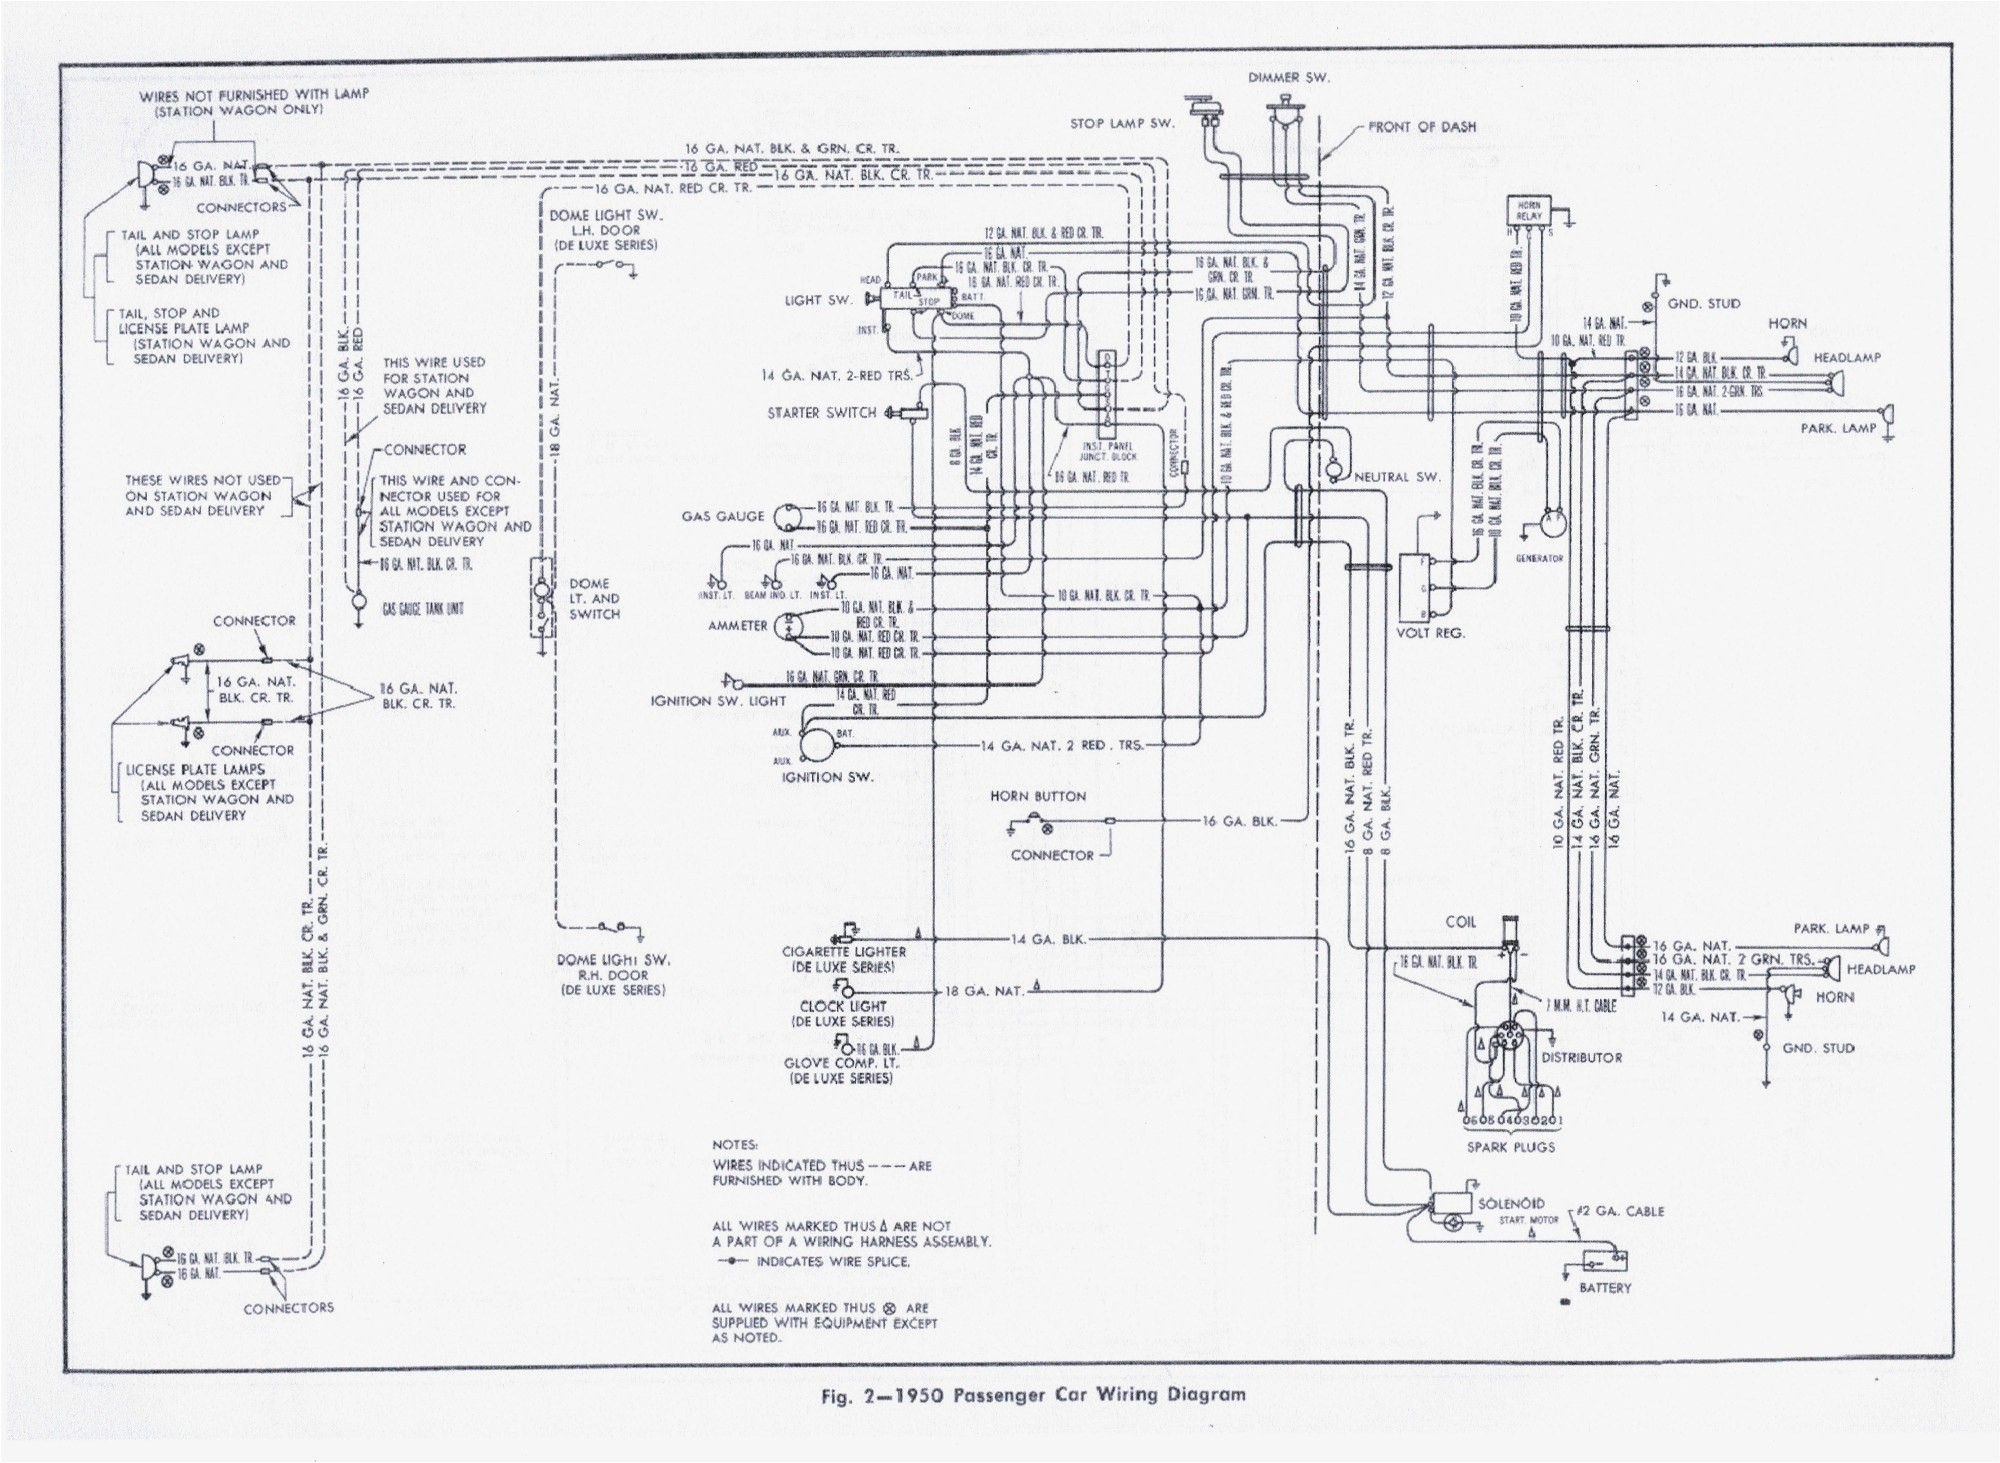 pride mobility scooter wiring diagram Download-Razor Electric Scooter  Wiring Diagram New Wiring Diagram for. DOWNLOAD. Wiring Diagram ...